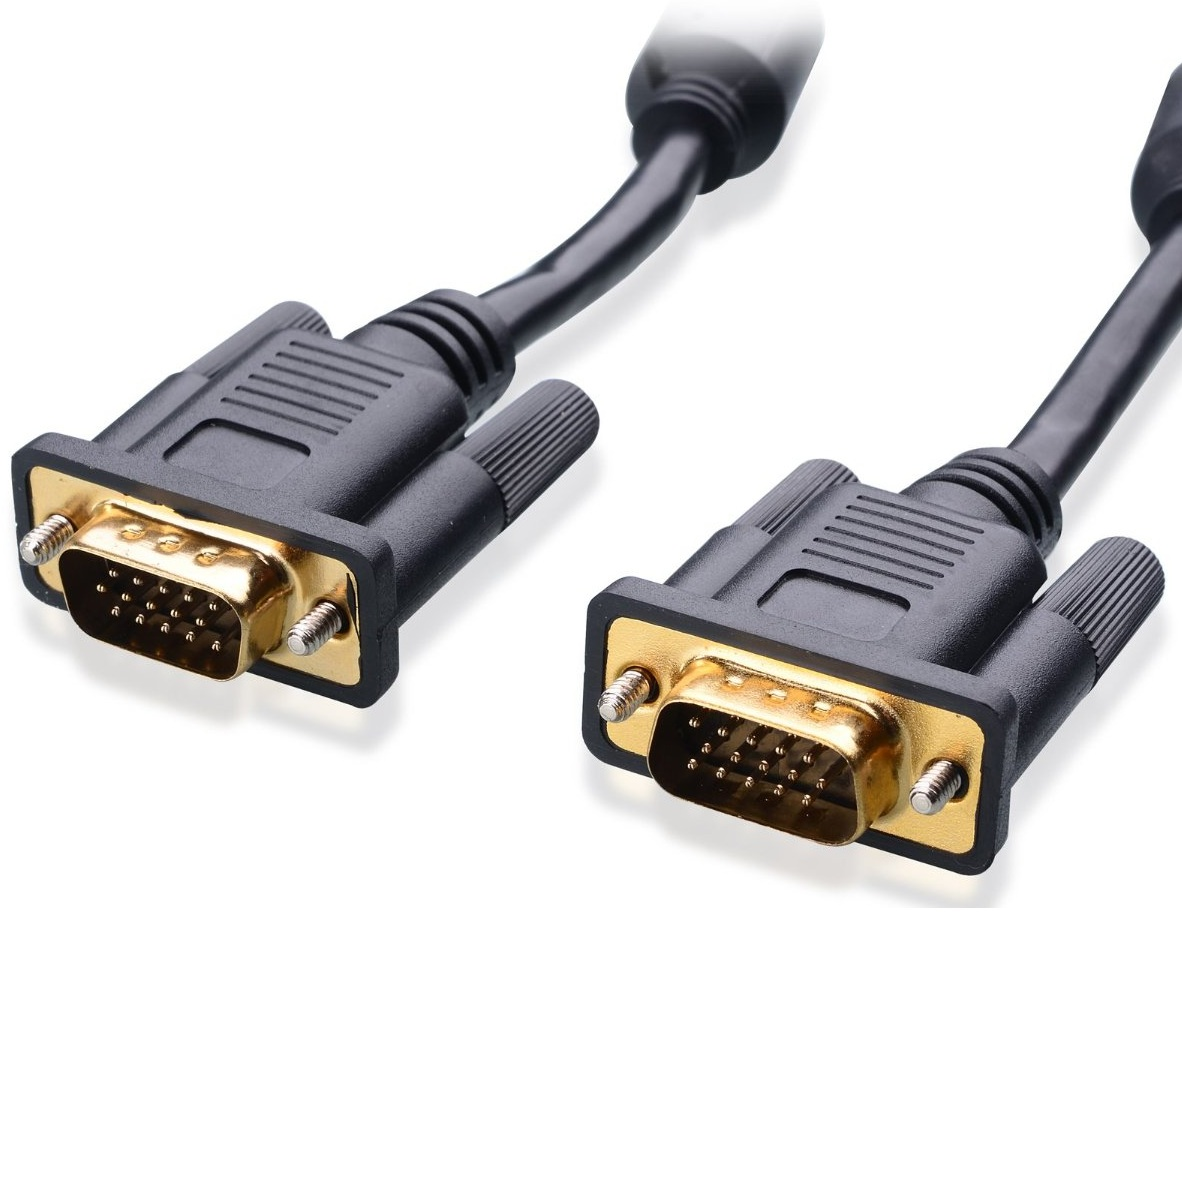 Cable Matters Gold Plated VGA Monitor Video Cable